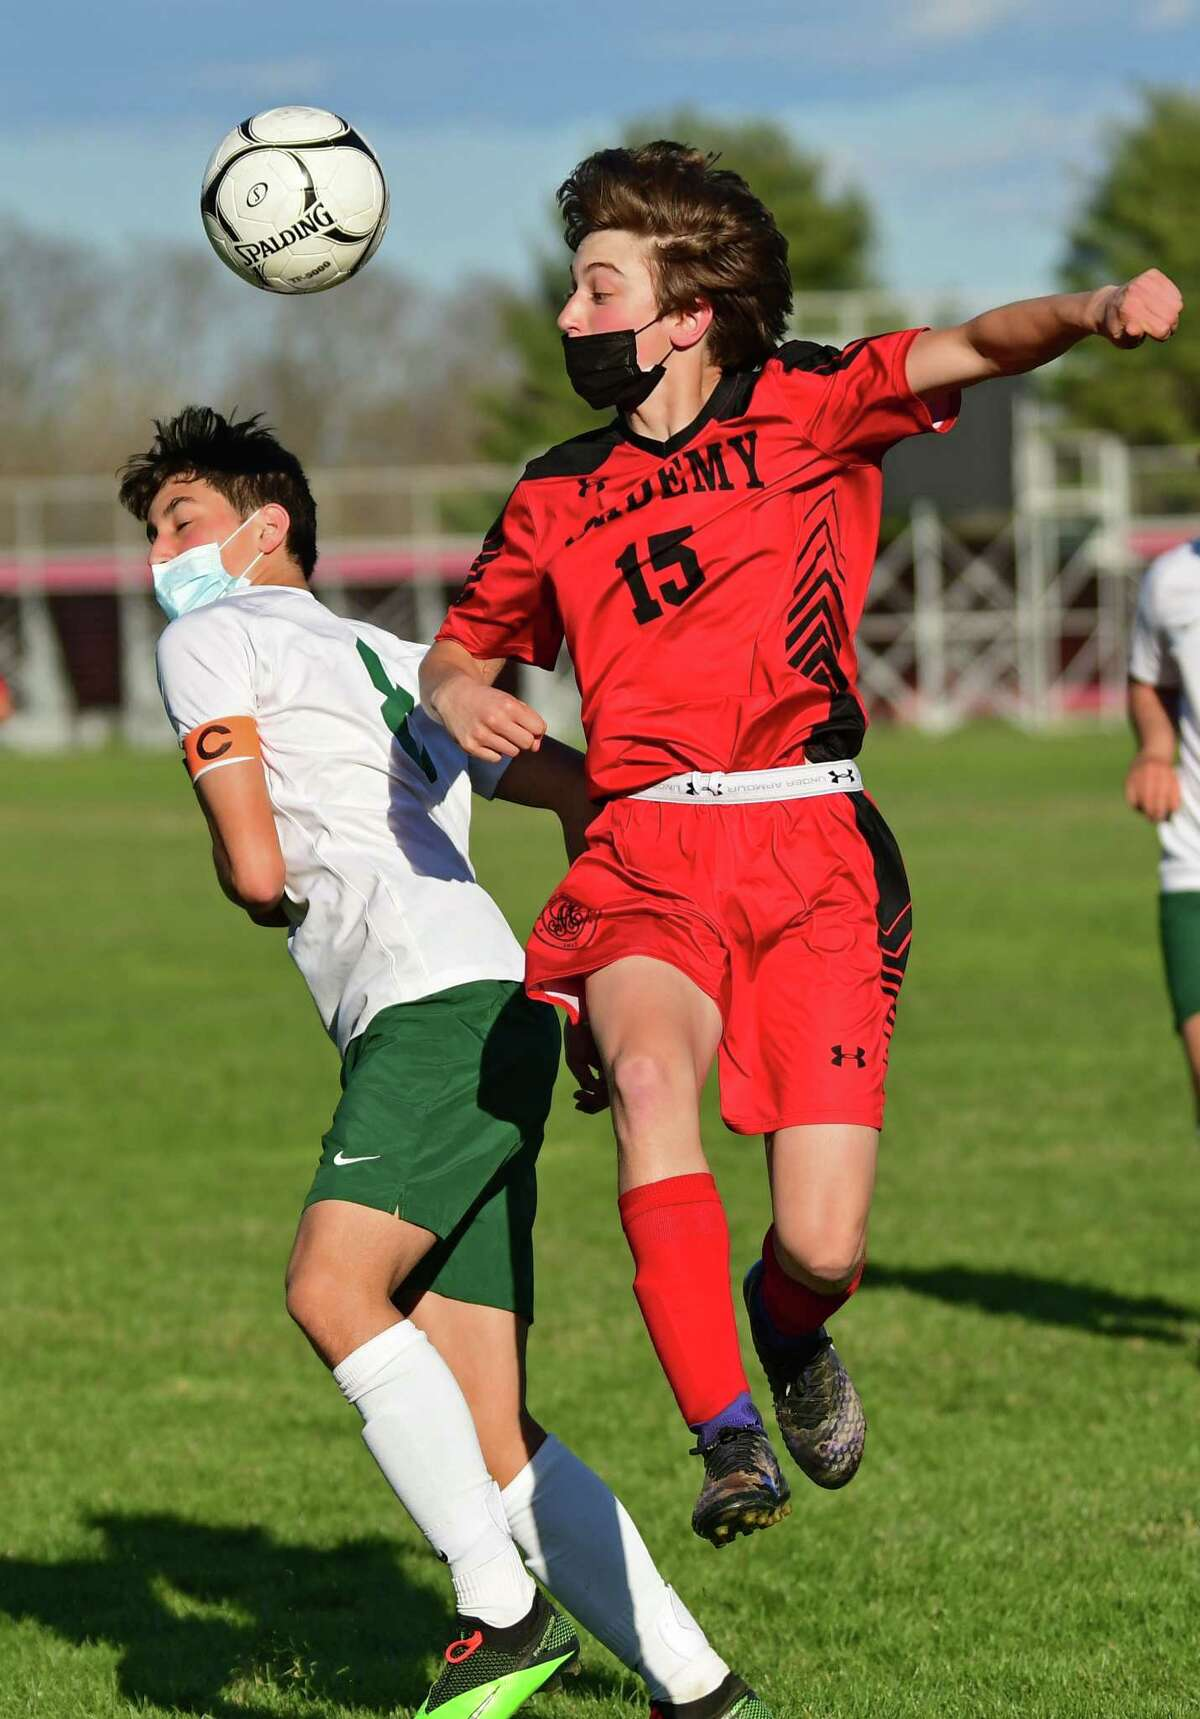 Schalmont's Andrew Kusek, left, and Albany Academy's Tommy McGuire battle for the ball during a soccer game on Thursday, April 8, 2021. Kusek scored nine goals in two games in the week running from Sept. 6-12 to earn Athlete of the Week honors.